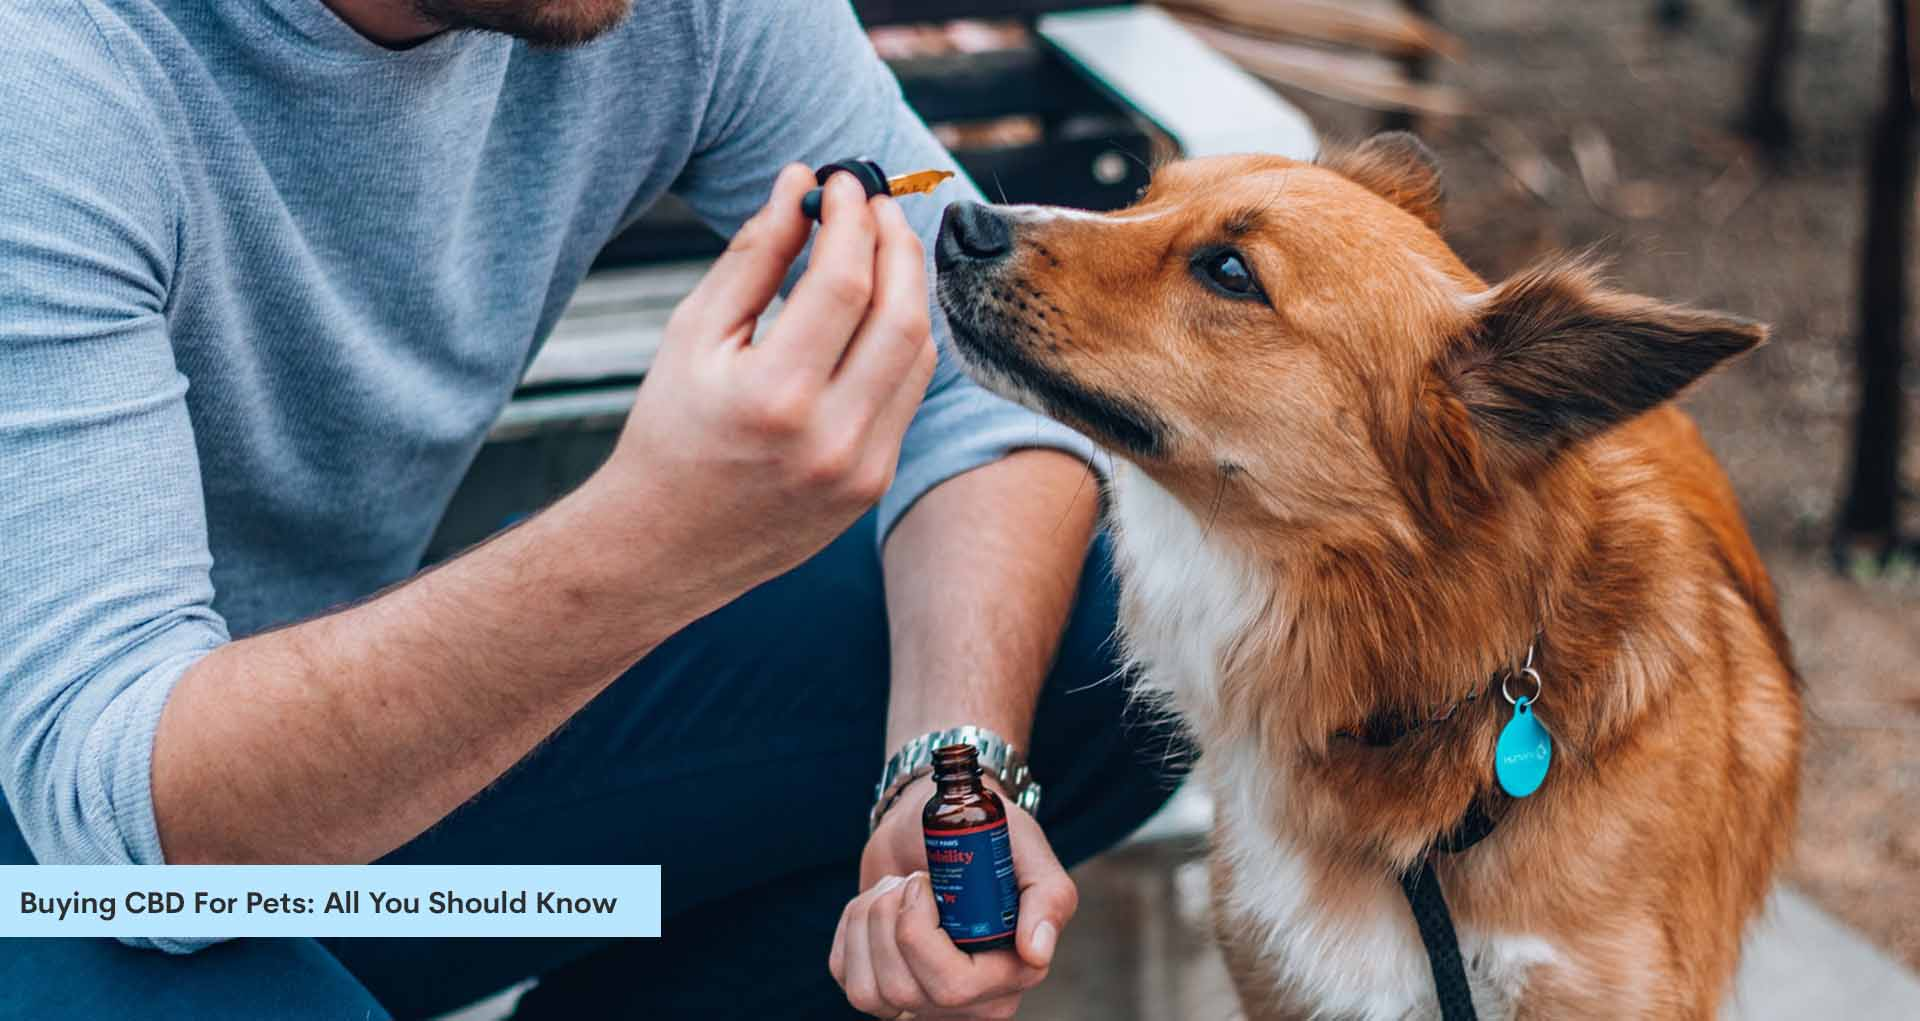 Buying CBD For Pets: All You Should Know